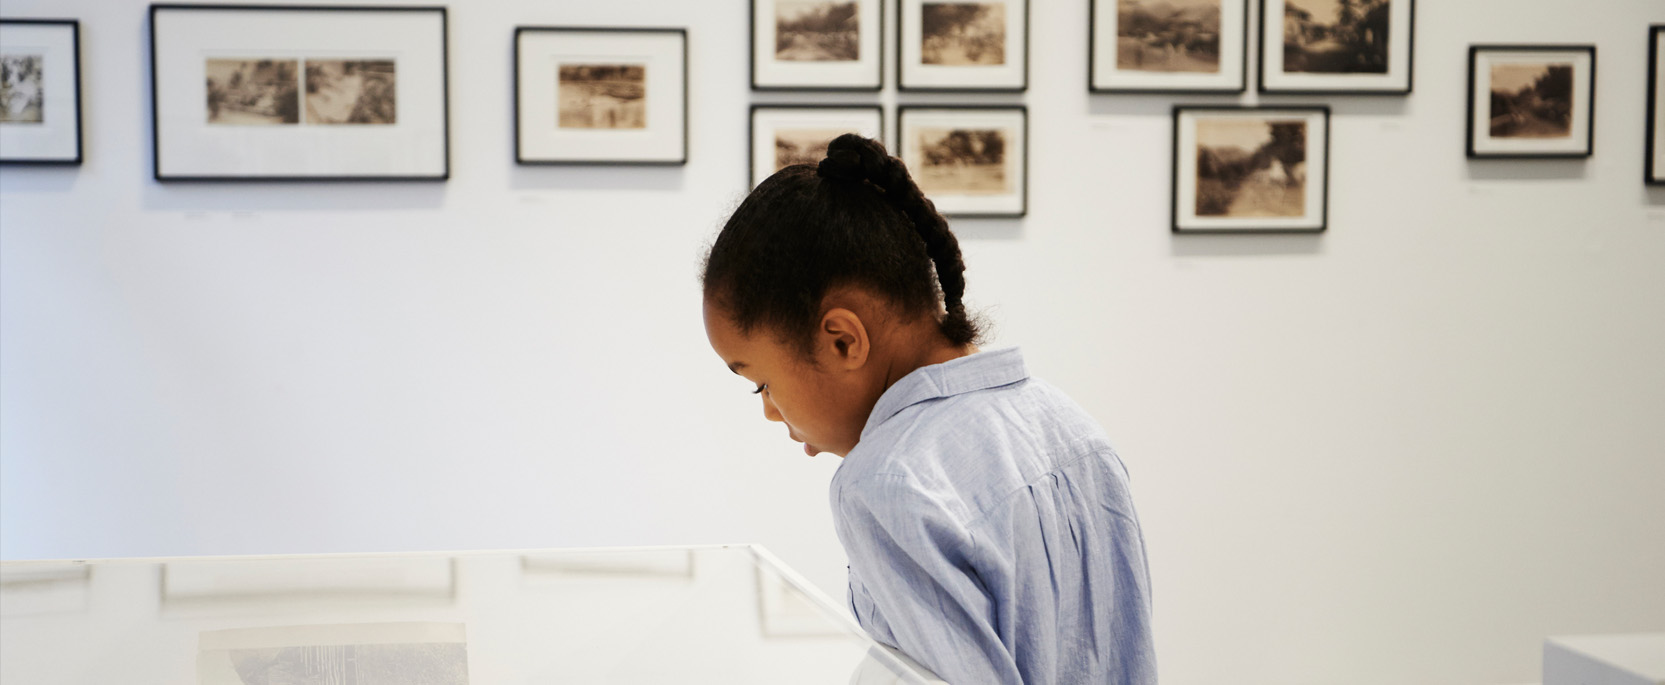 About Autograph Learning. Child looking at exhibition.